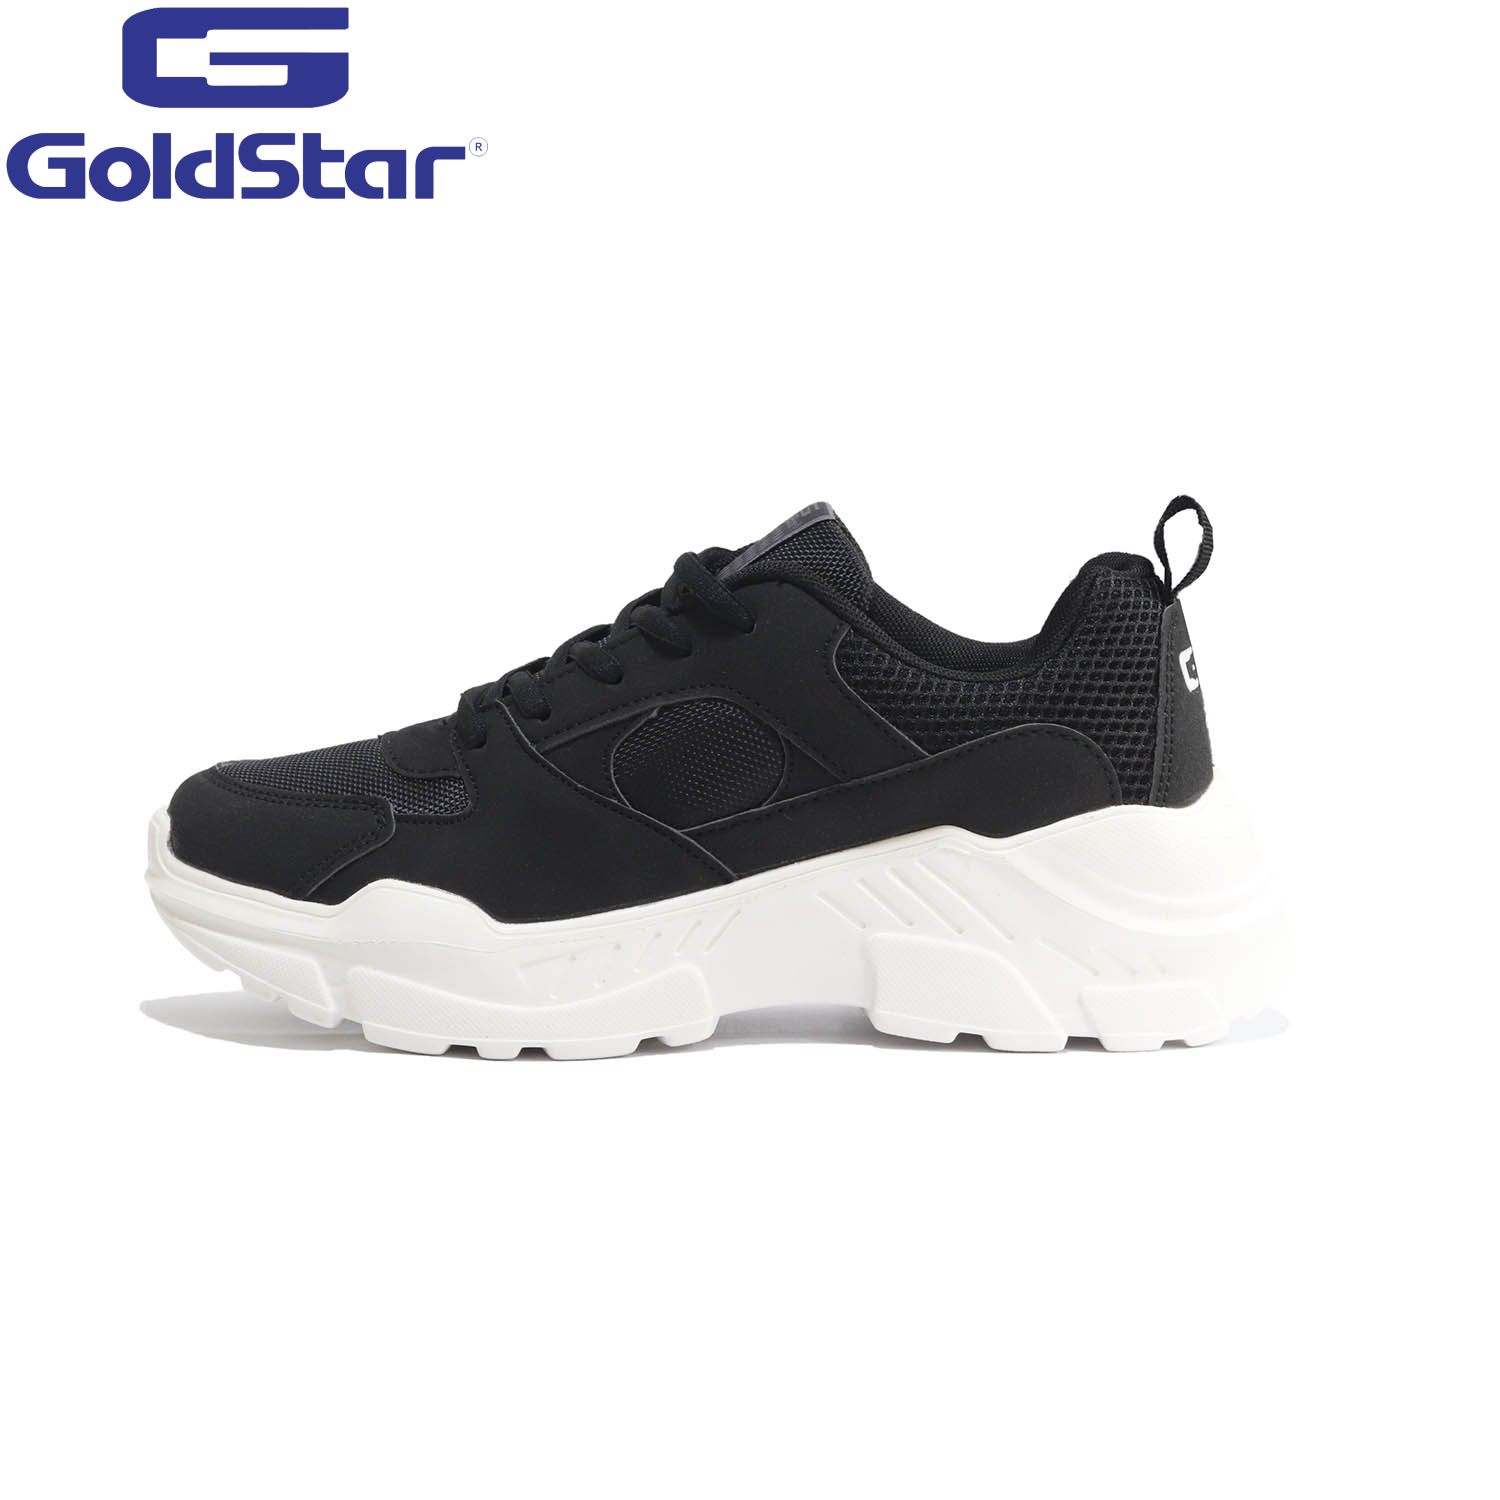 Goldstar Black Sports Shoes For Men - 9137